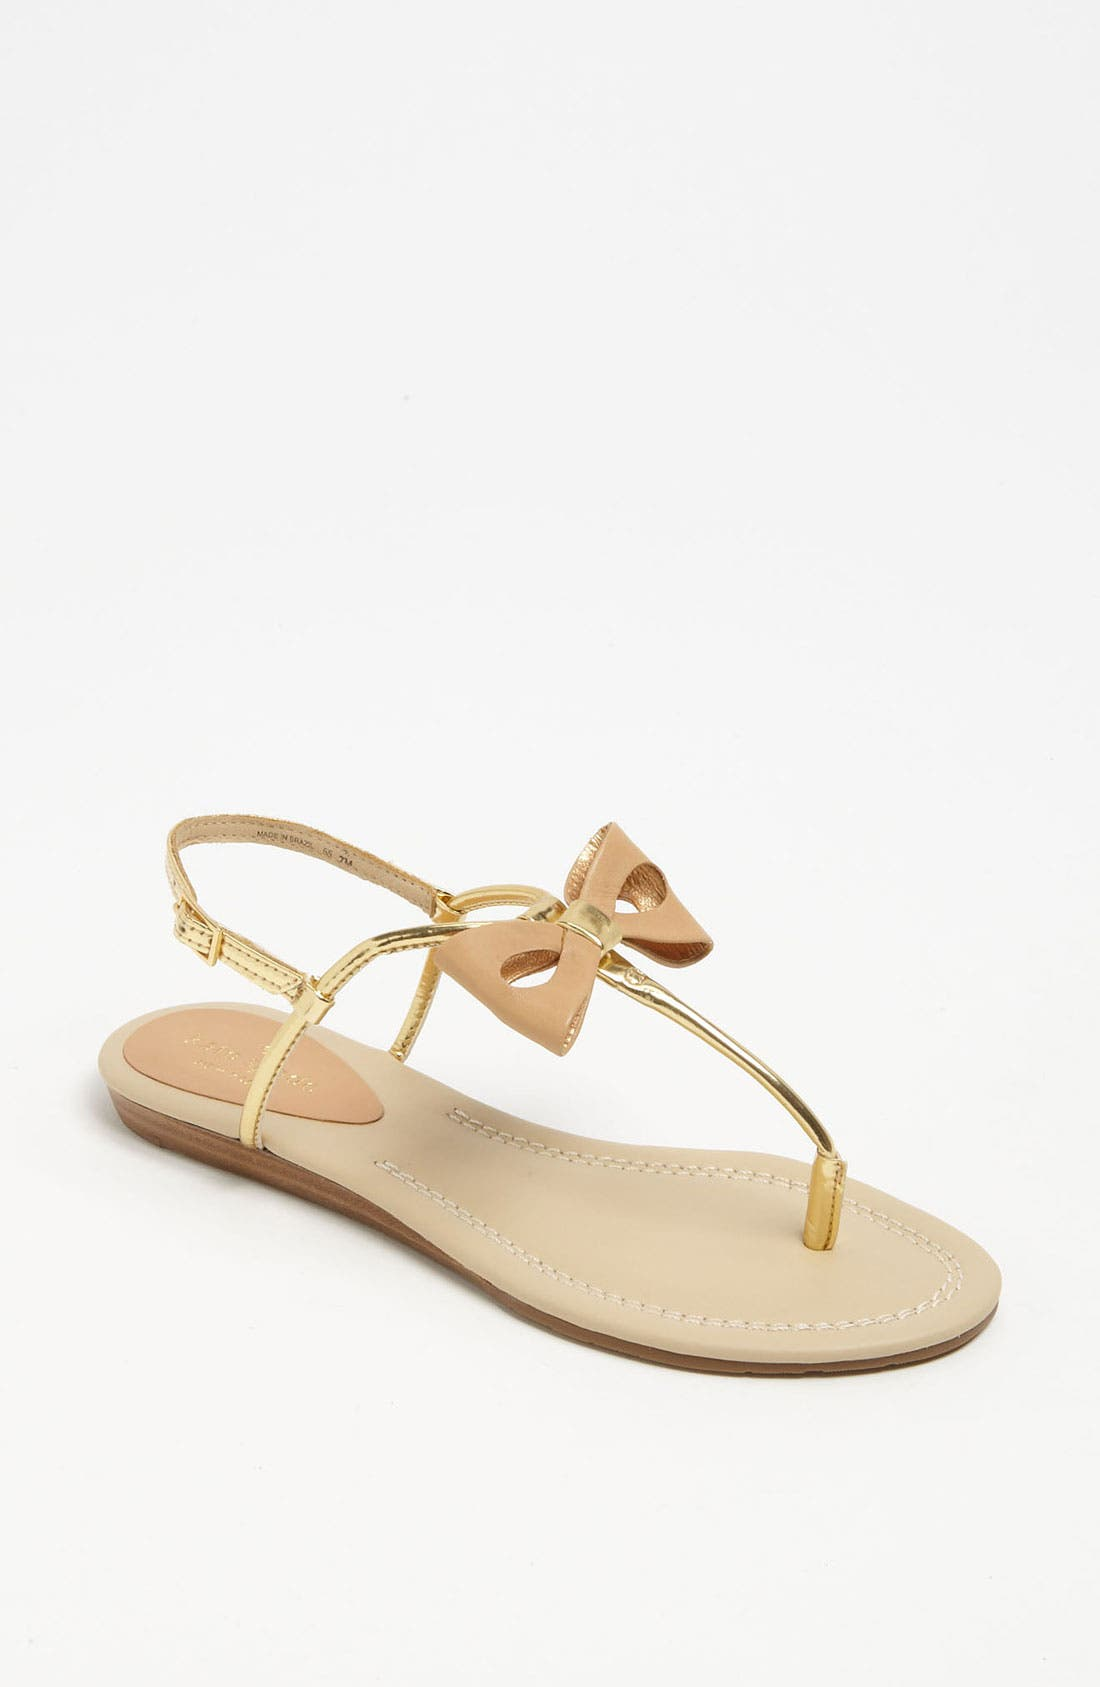 Alternate Image 1 Selected - kate spade new york 'trendy' sandal